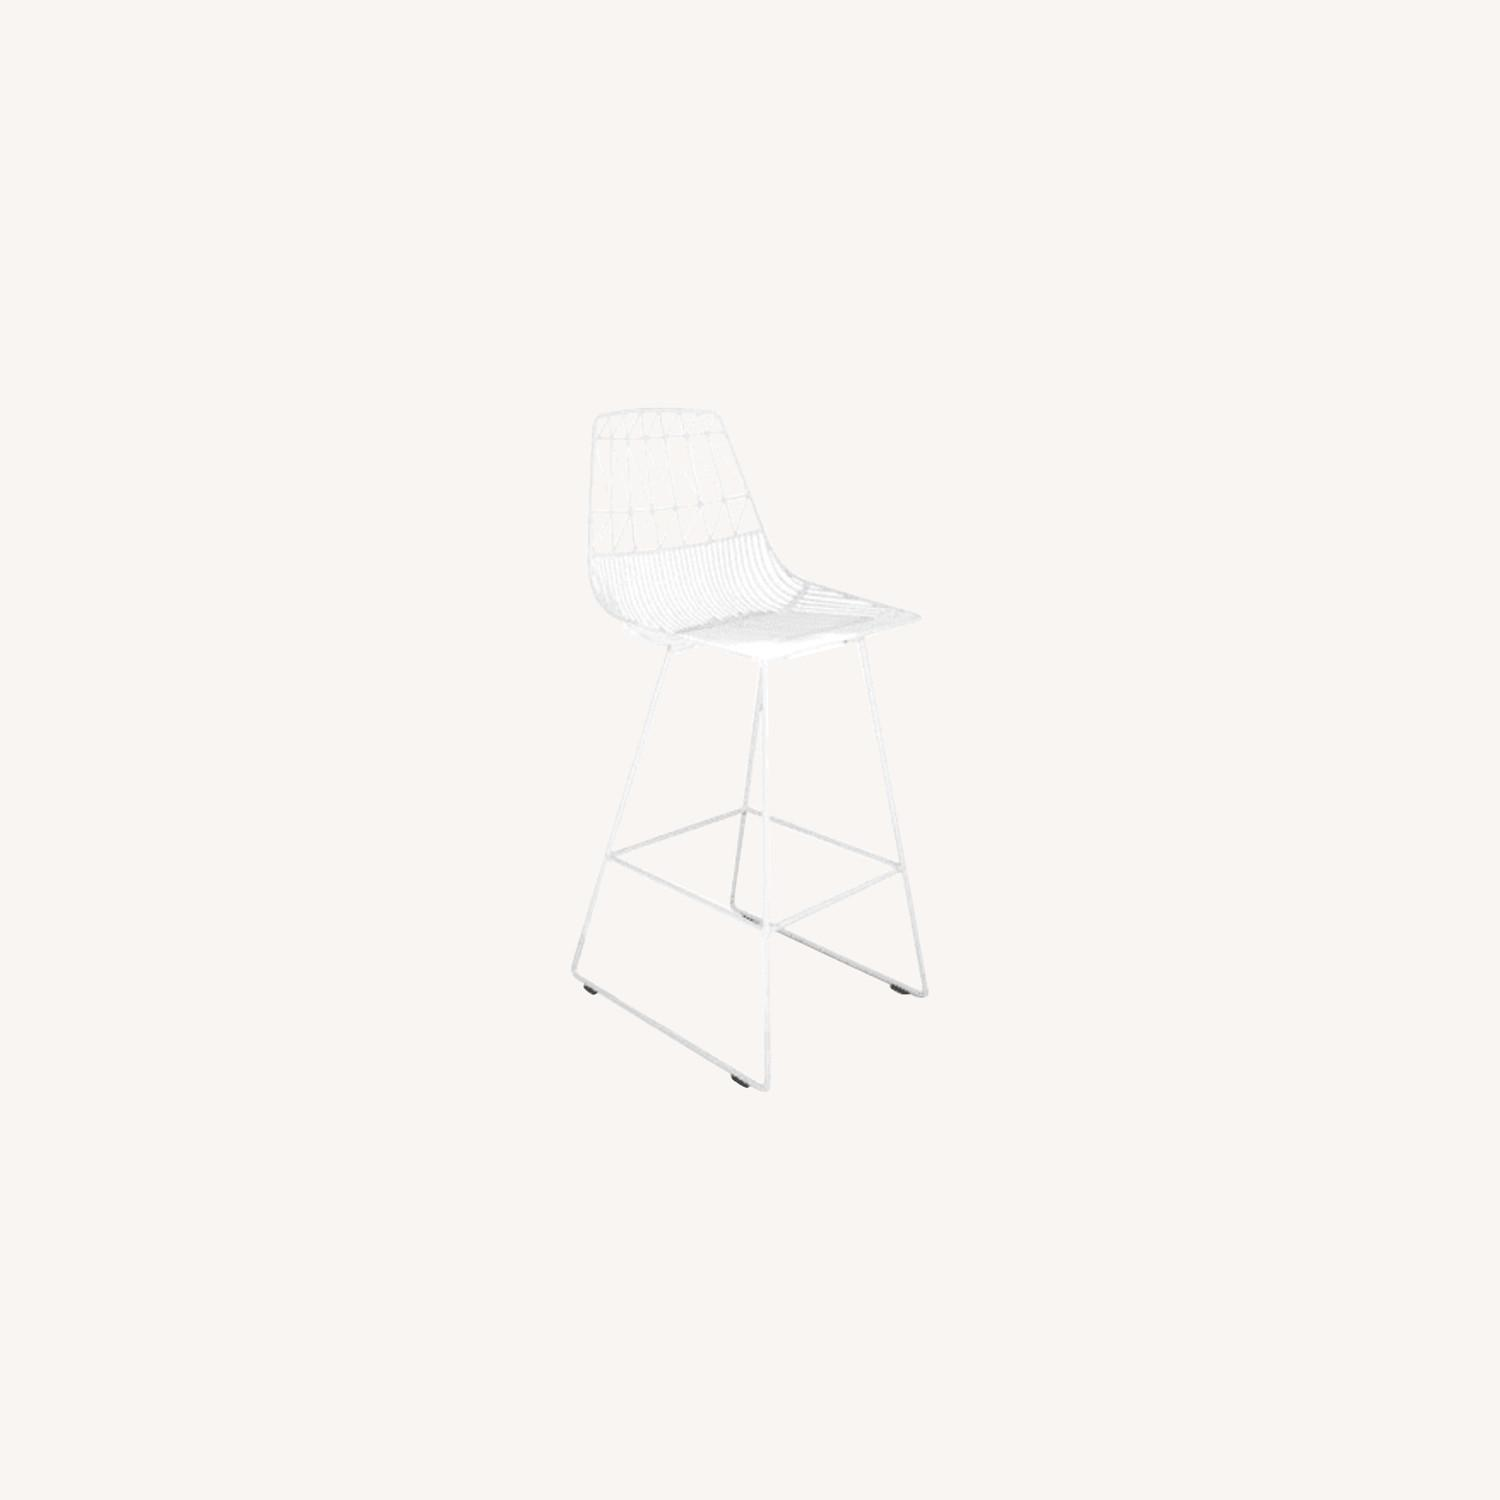 Bend Goods Replica Lucy Wire Stools x 2 - image-0